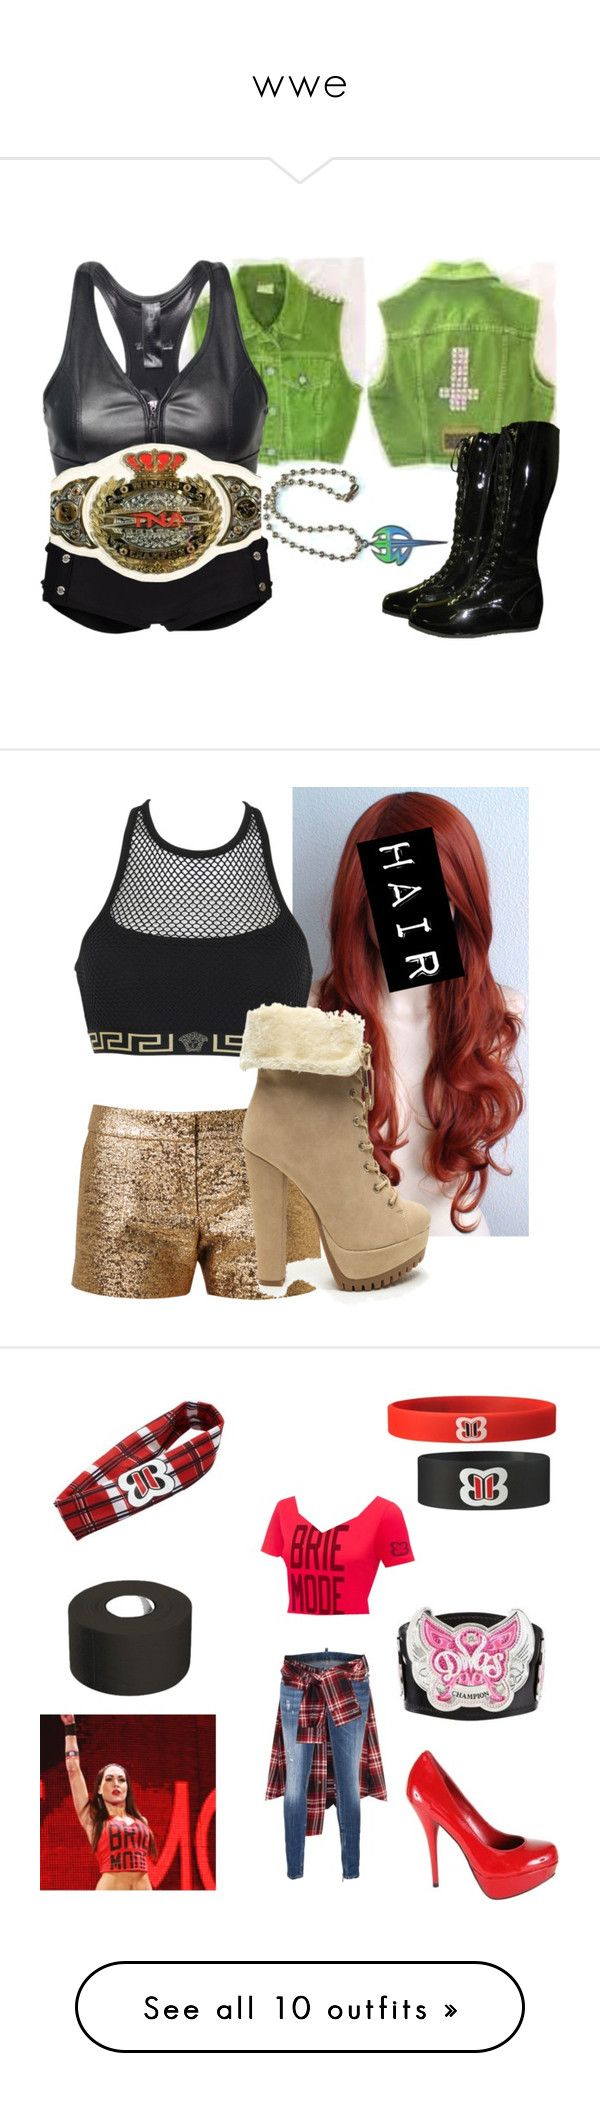 """""""wwe"""" by estefeni-argueta ❤ liked on Polyvore featuring intimates, hosiery, socks, outfits, attires, costum, tops, wrestling, costumes and diva outfit"""